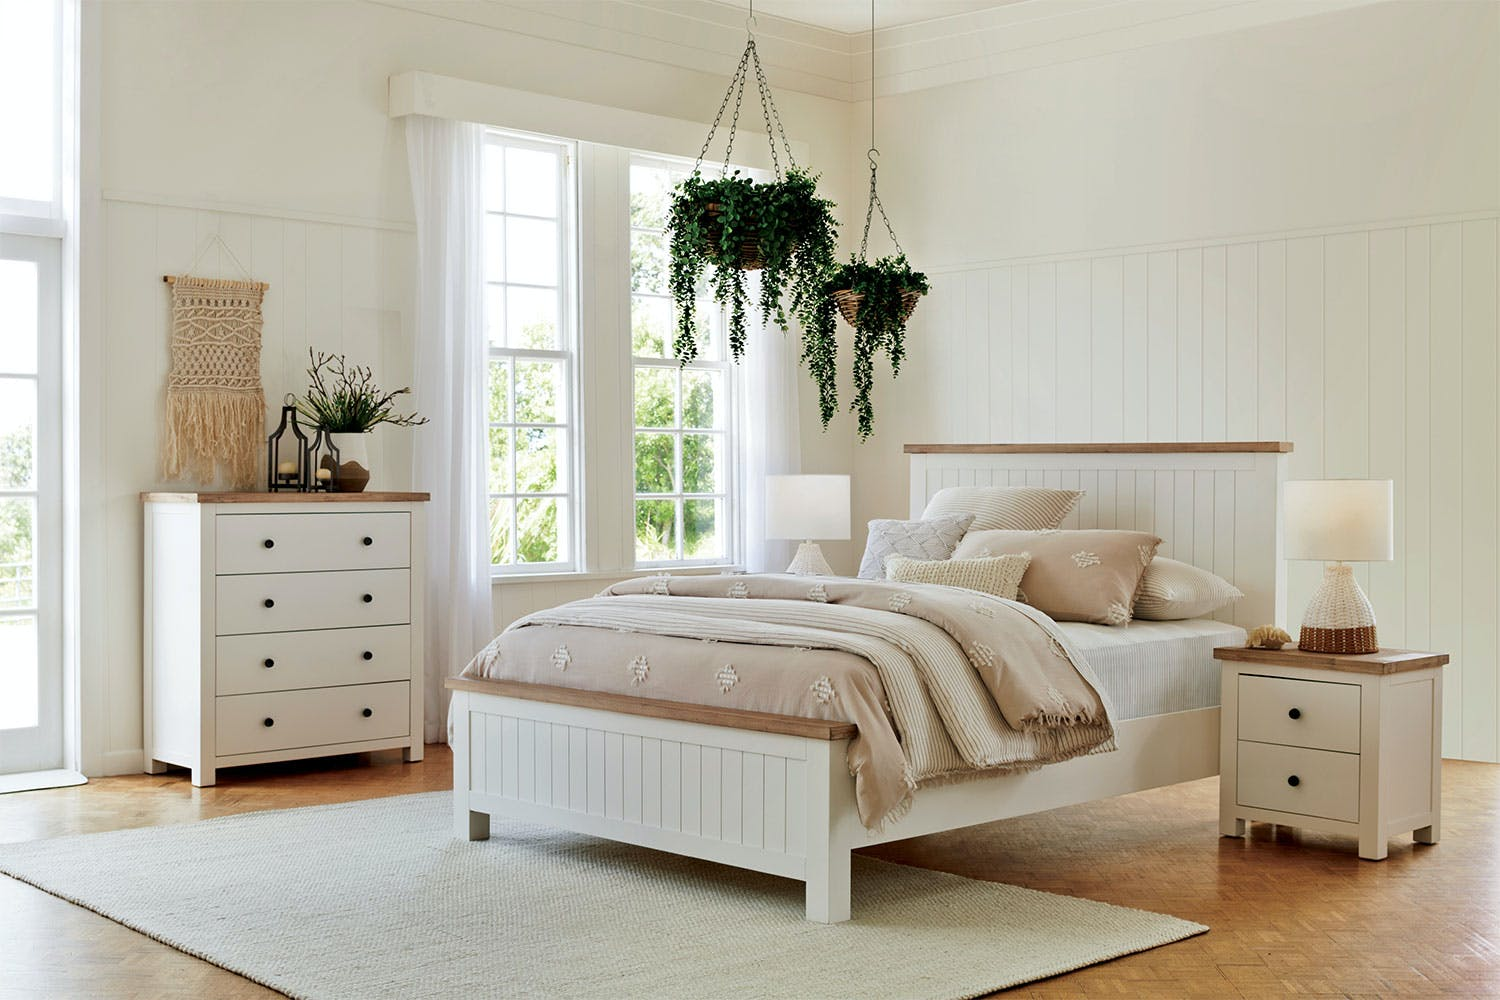 Lincoln 4 Piece Queen Tallboy Bedroom Suite By John Young Furniture | Harvey  Norman New Zealand